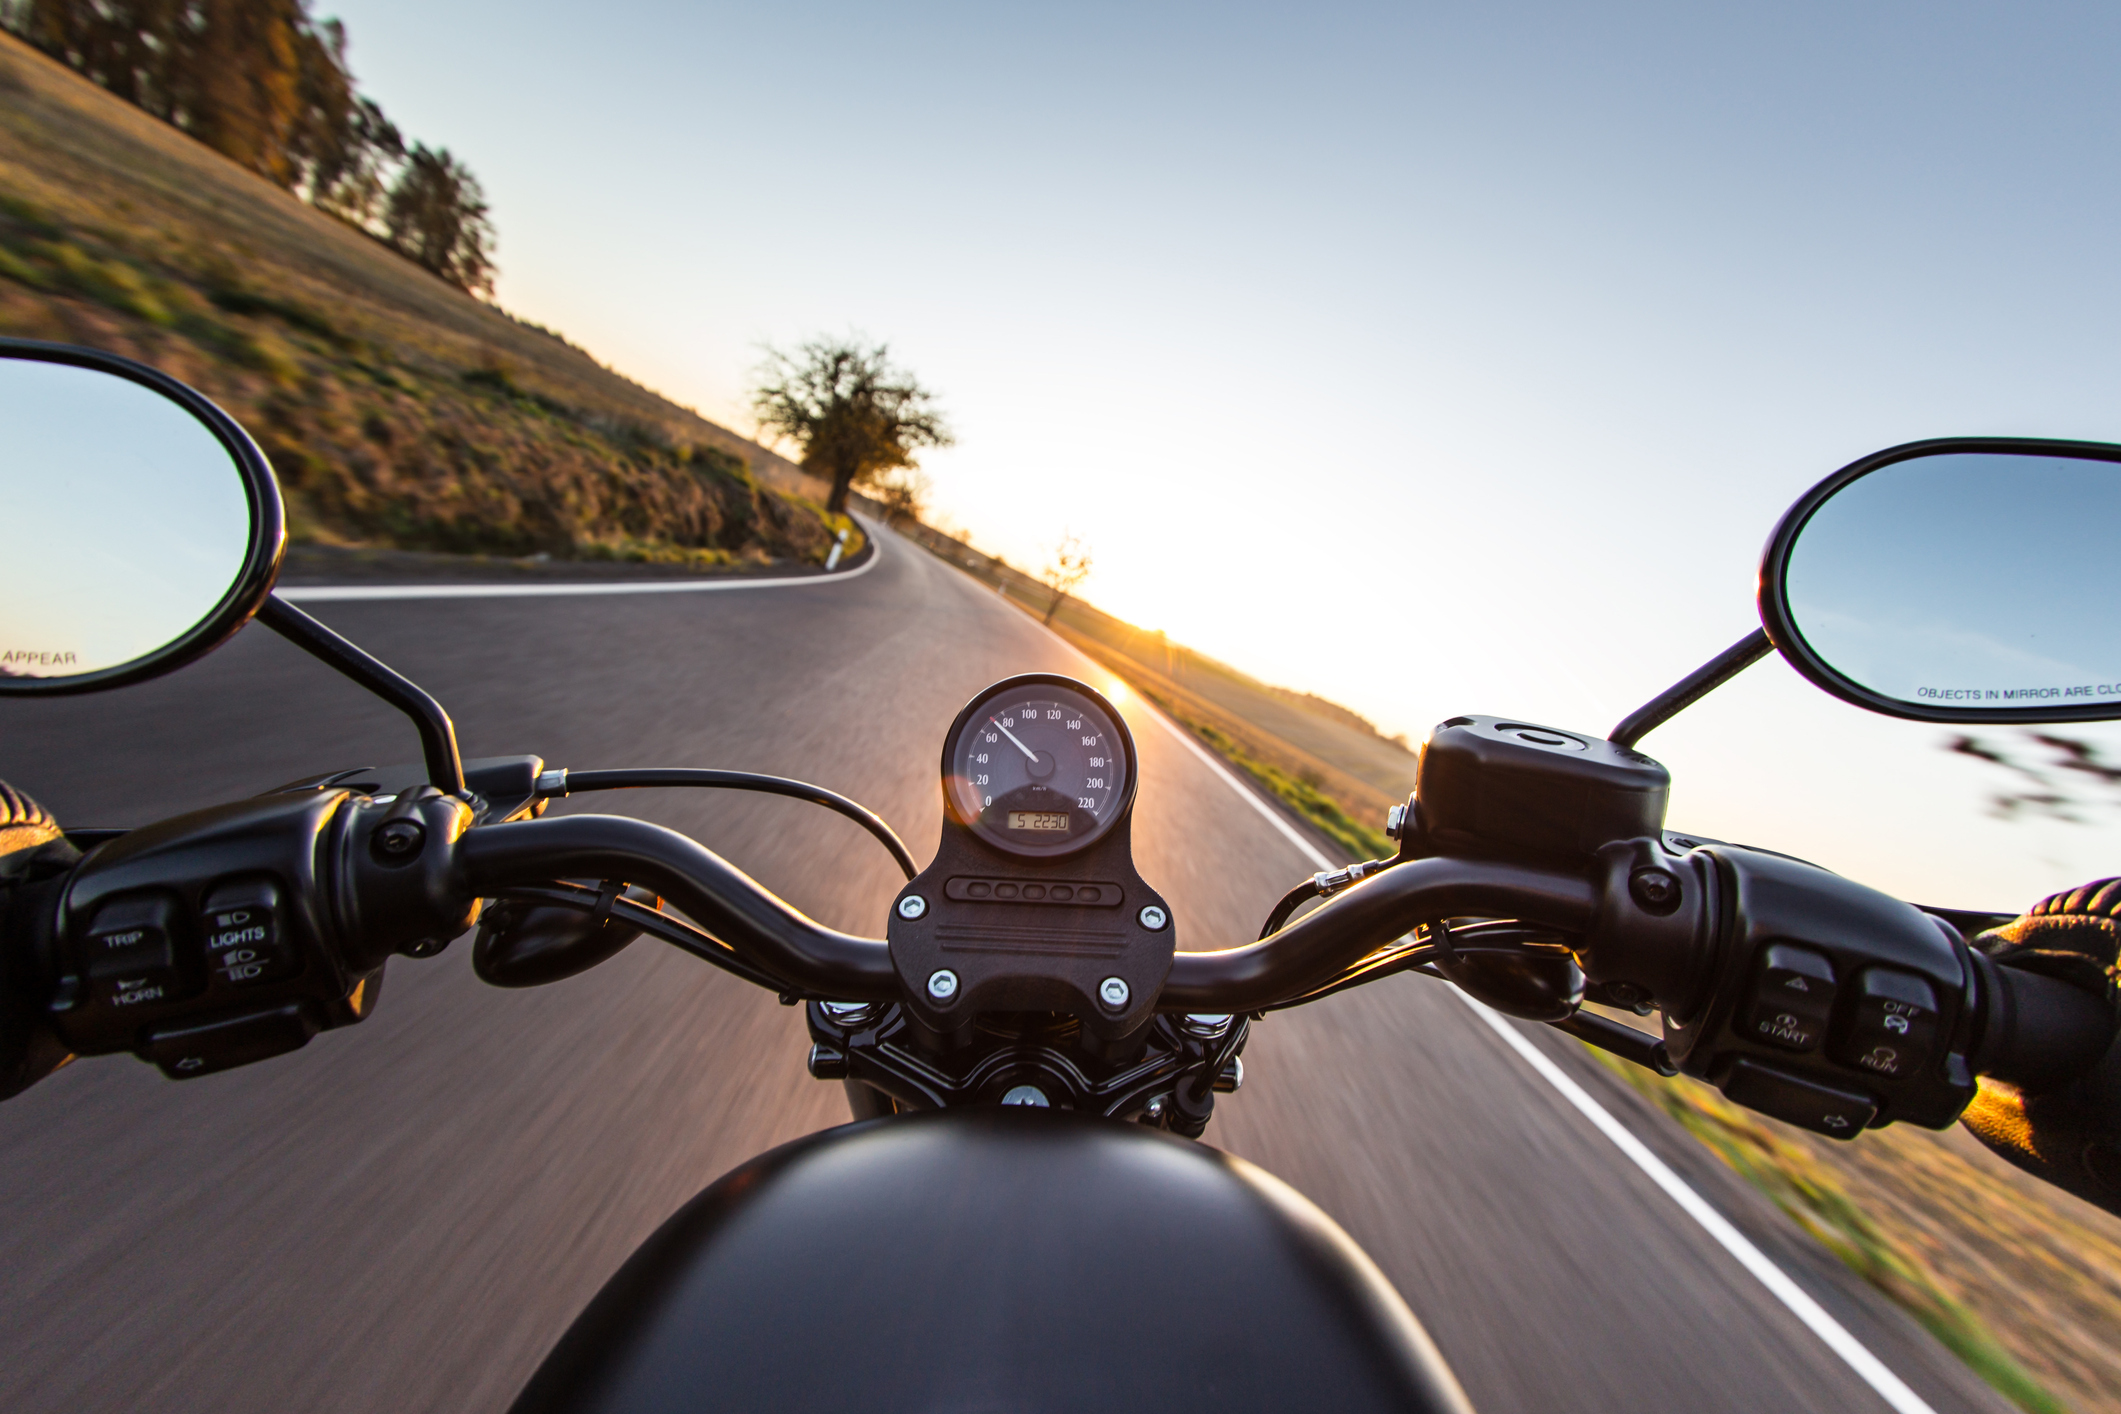 hit the road with a low motorcycle payment